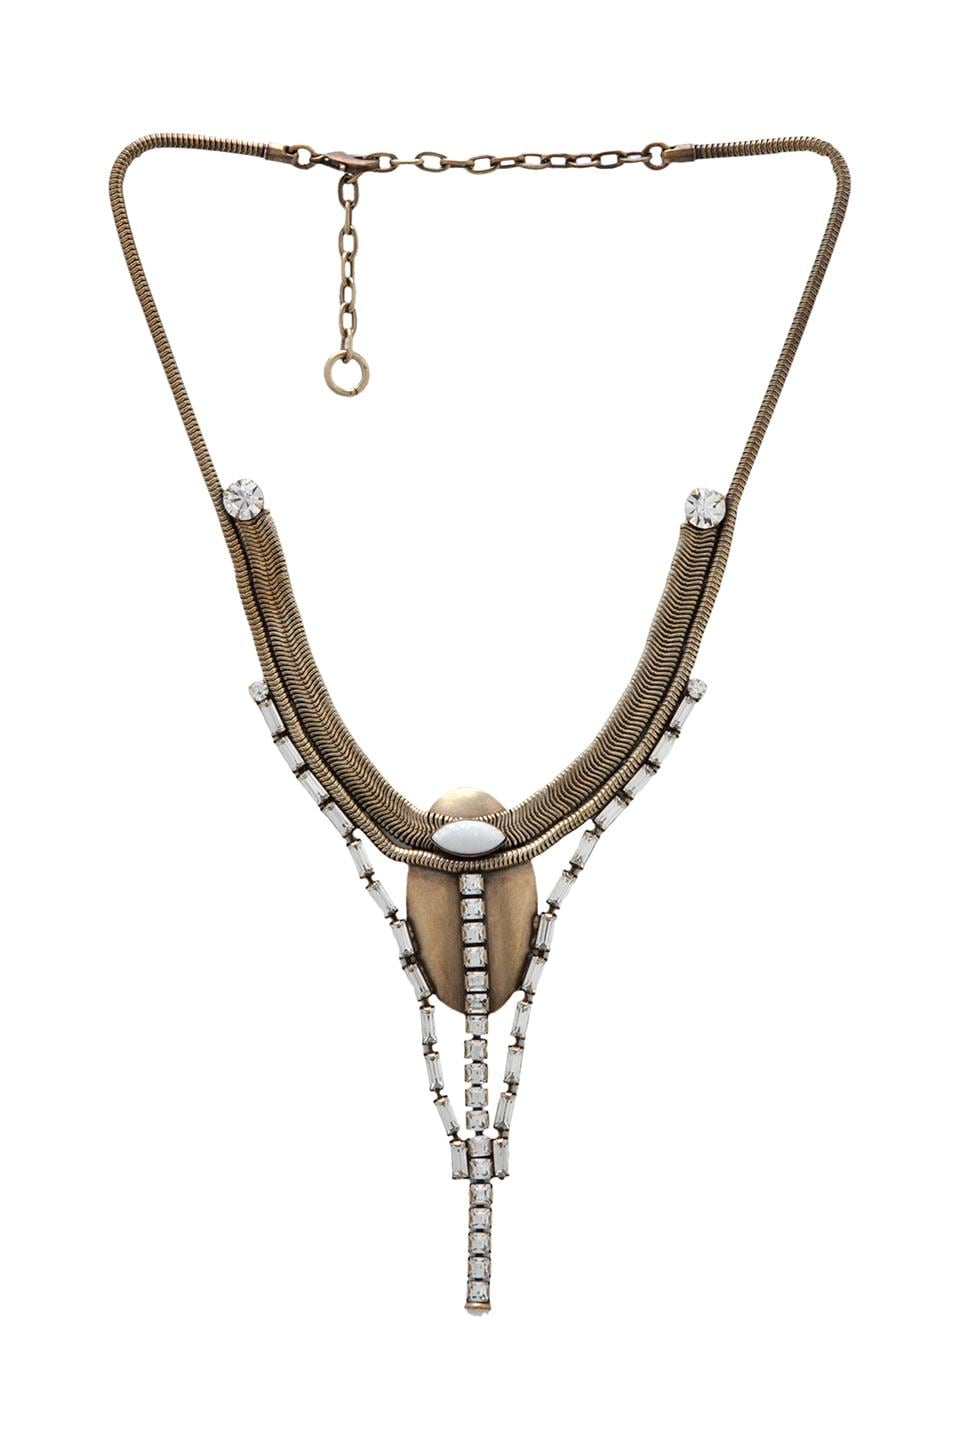 Lionette by Noa Sade Talia Necklace in White